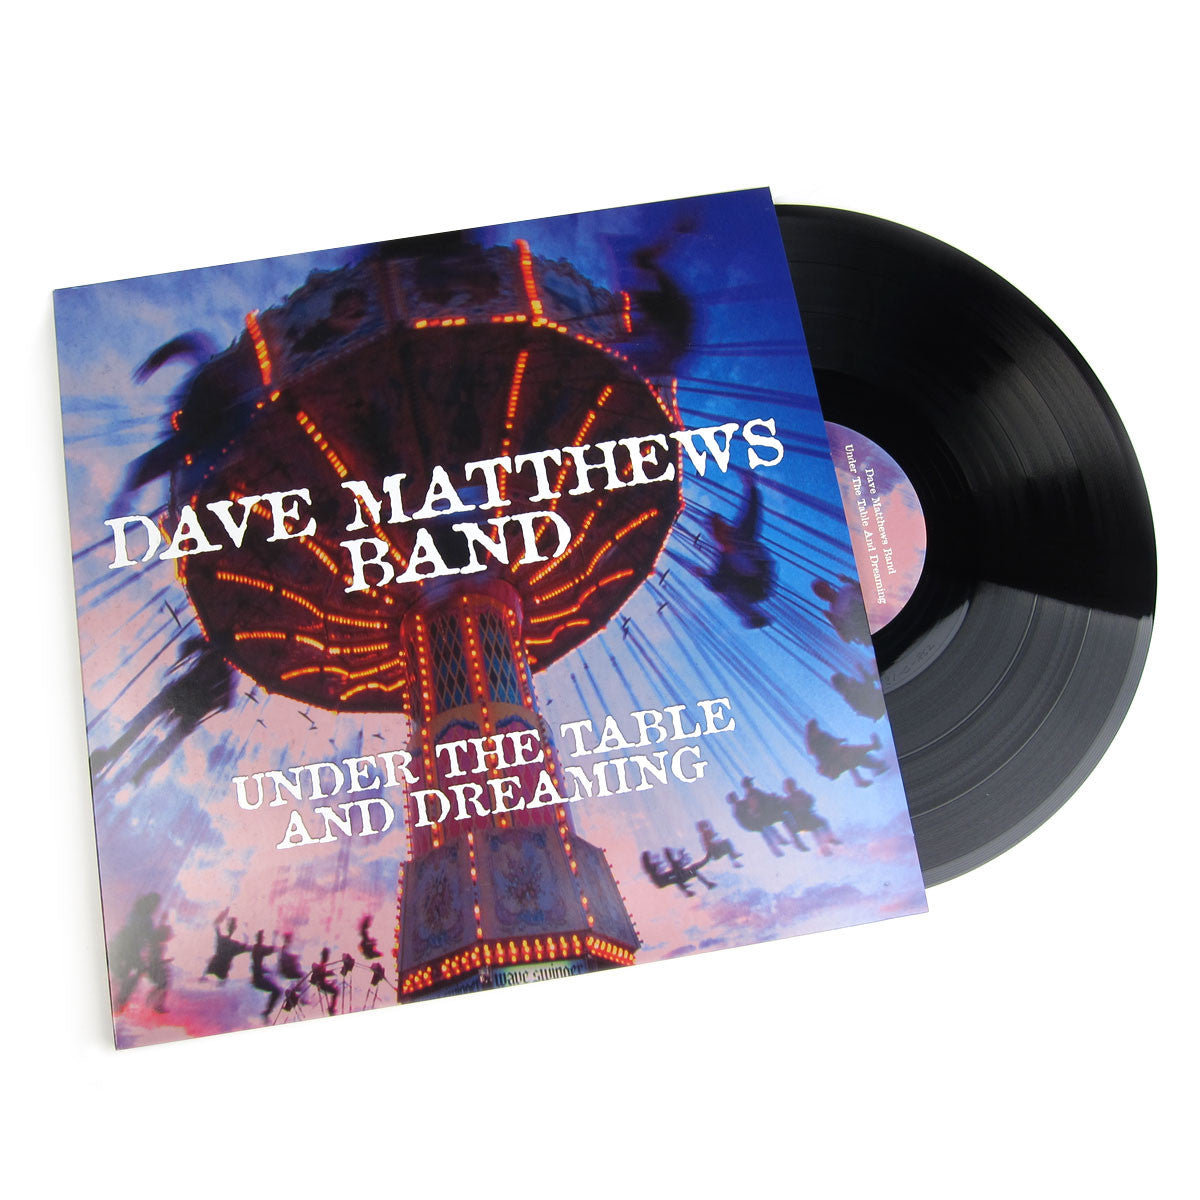 Dave Matthews Band: Under The Table And Dreaming (180g) Vinyl 2LP